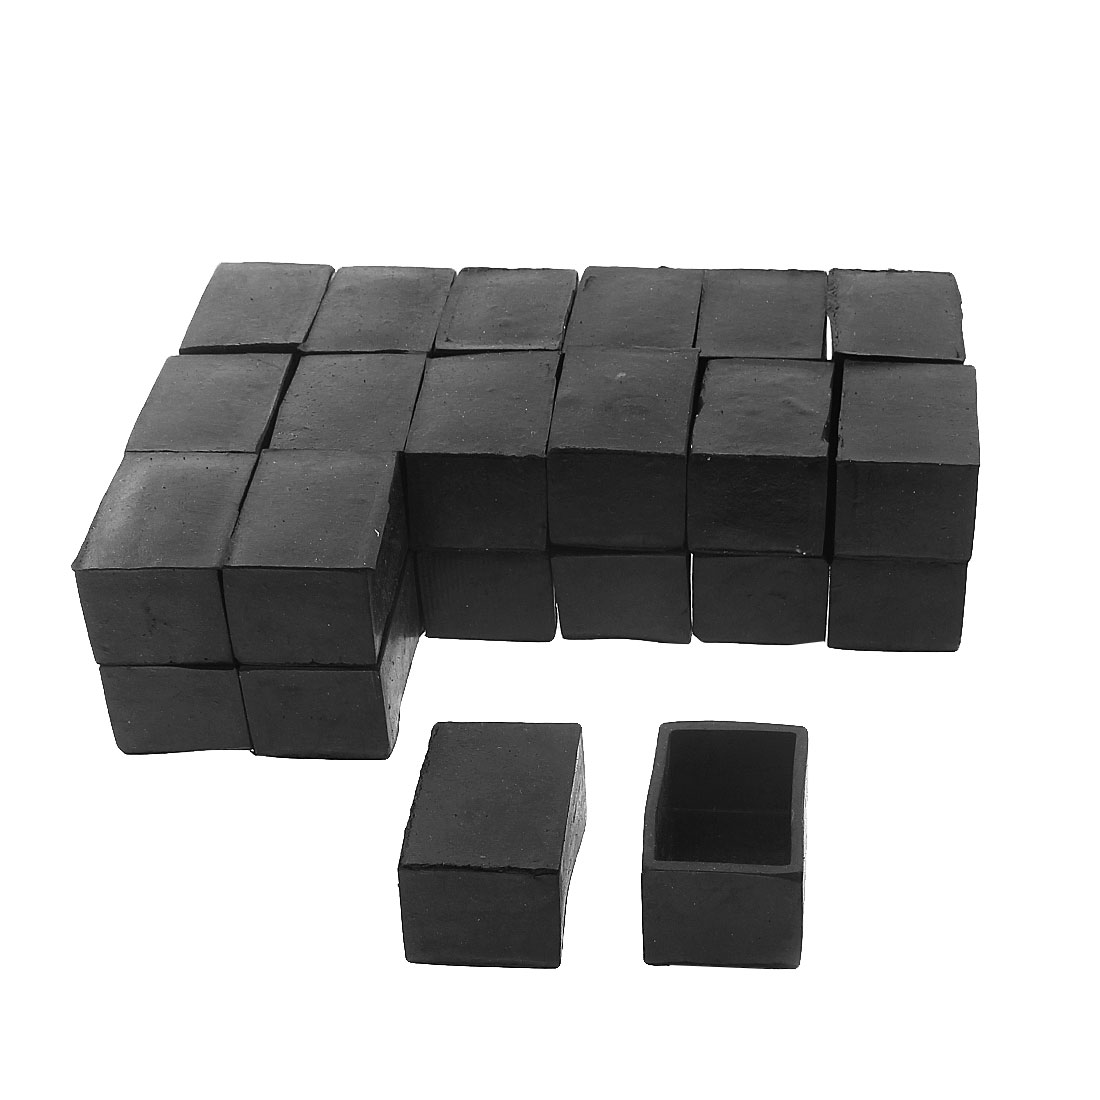 40mm x 25mm Rectangle Shape Furniture Table Chair Foot Leg Rubber End Cap Cover Black 30pcs